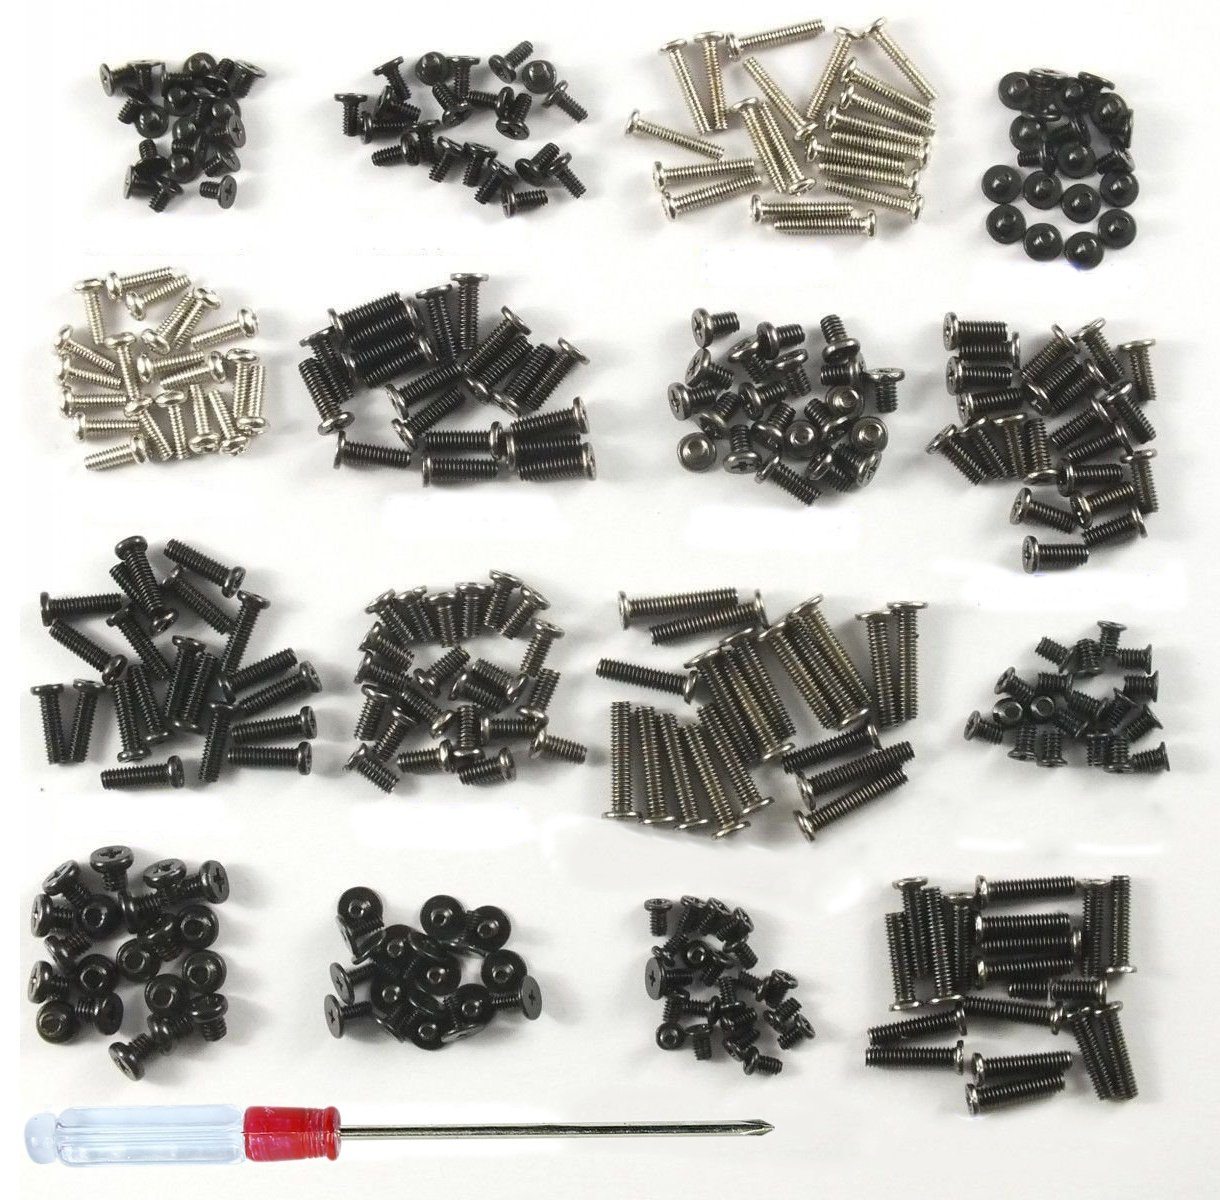 800 Pieces Laptop Screws Assorted Universal Notebook Computer Screws Kit Repair Screw with Screwdriver For IBM HP Dell Lenovo Samsung Sony Toshiba Gateway Acer ¡­